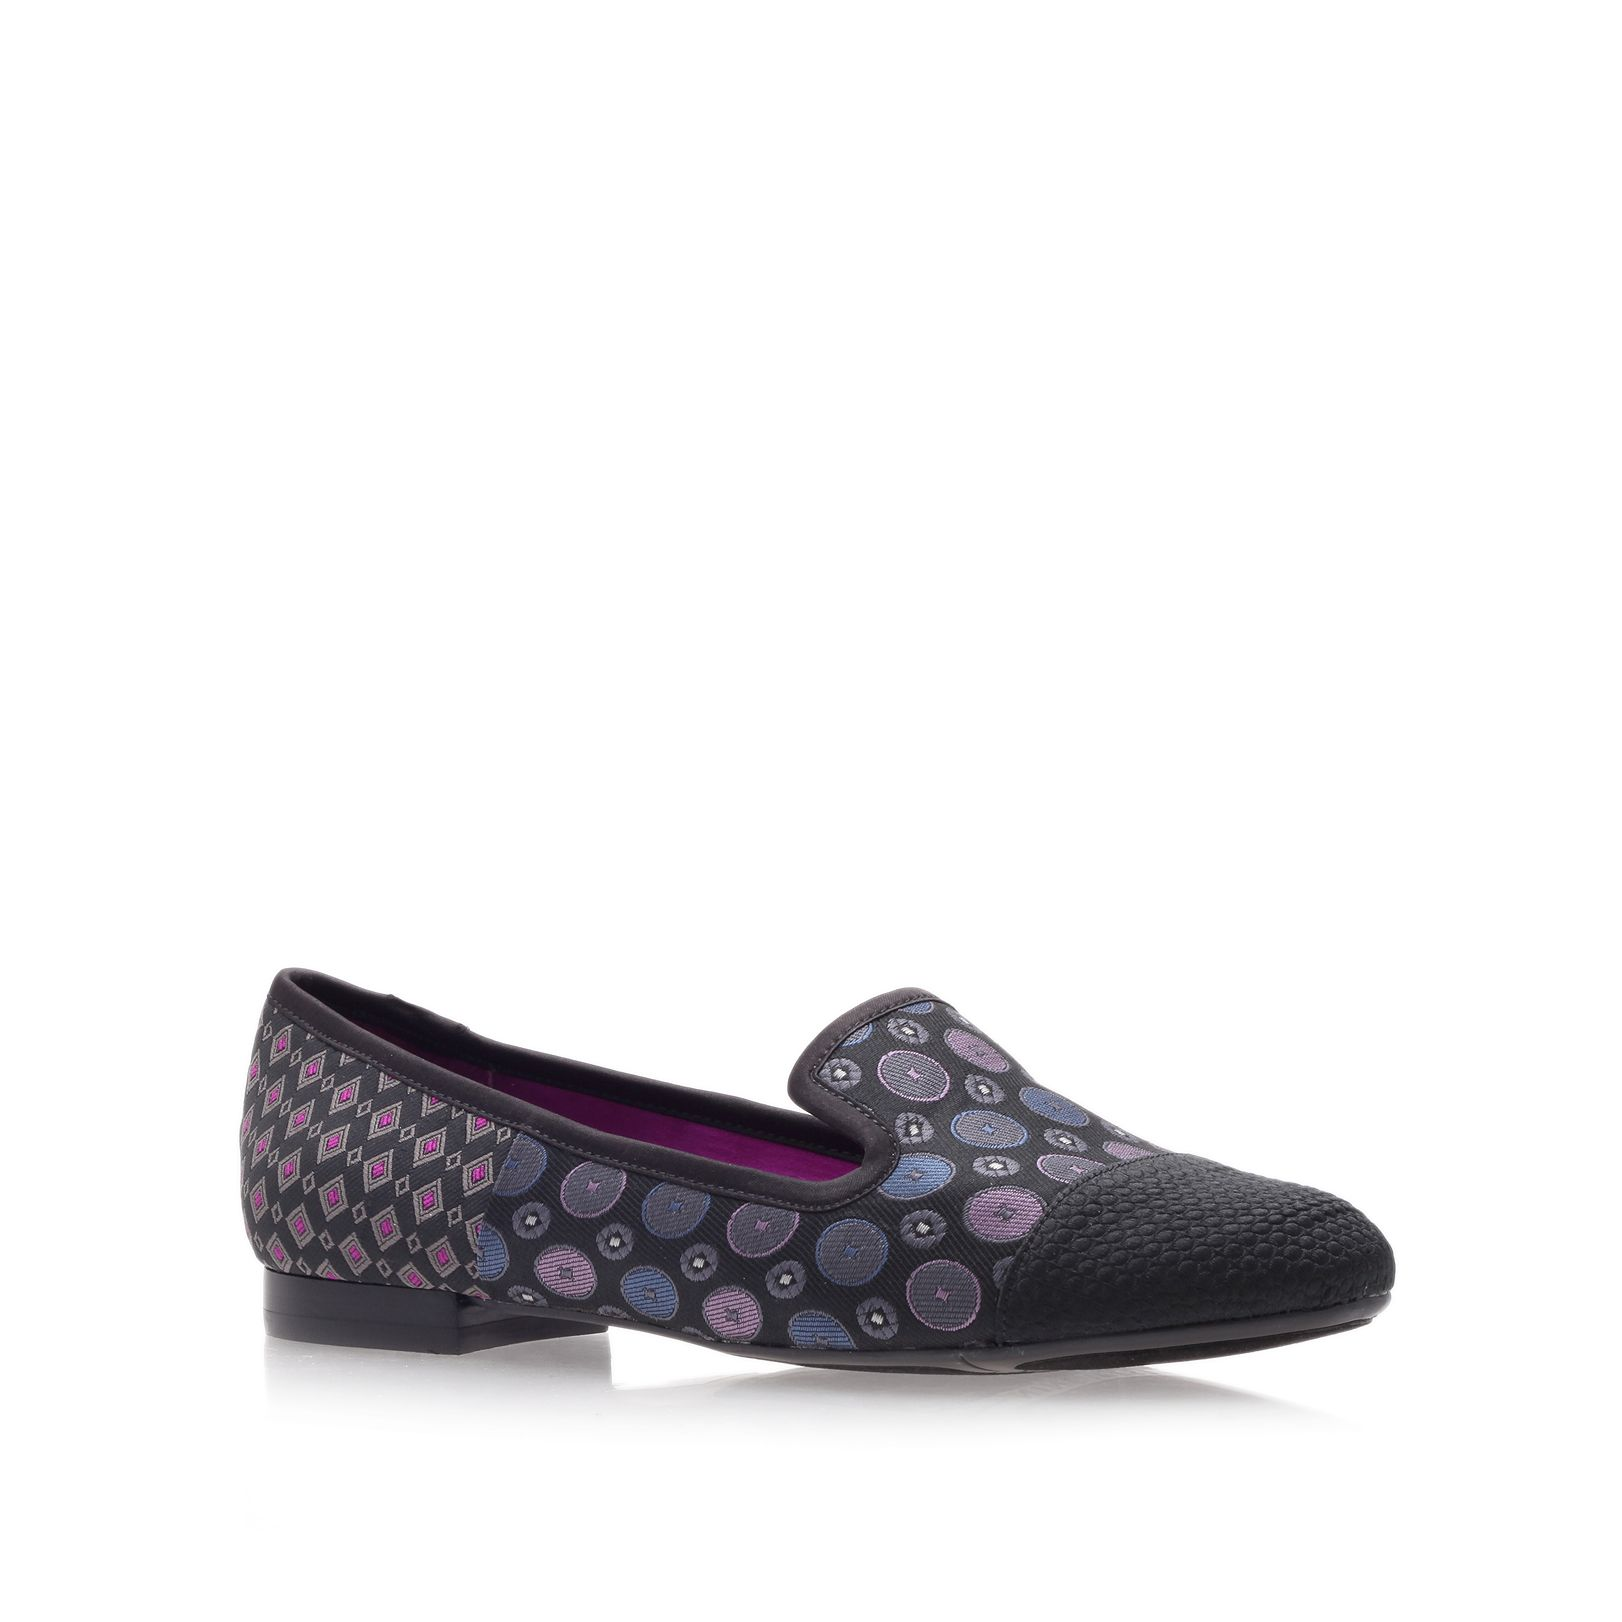 Leonah2 slipper shoes